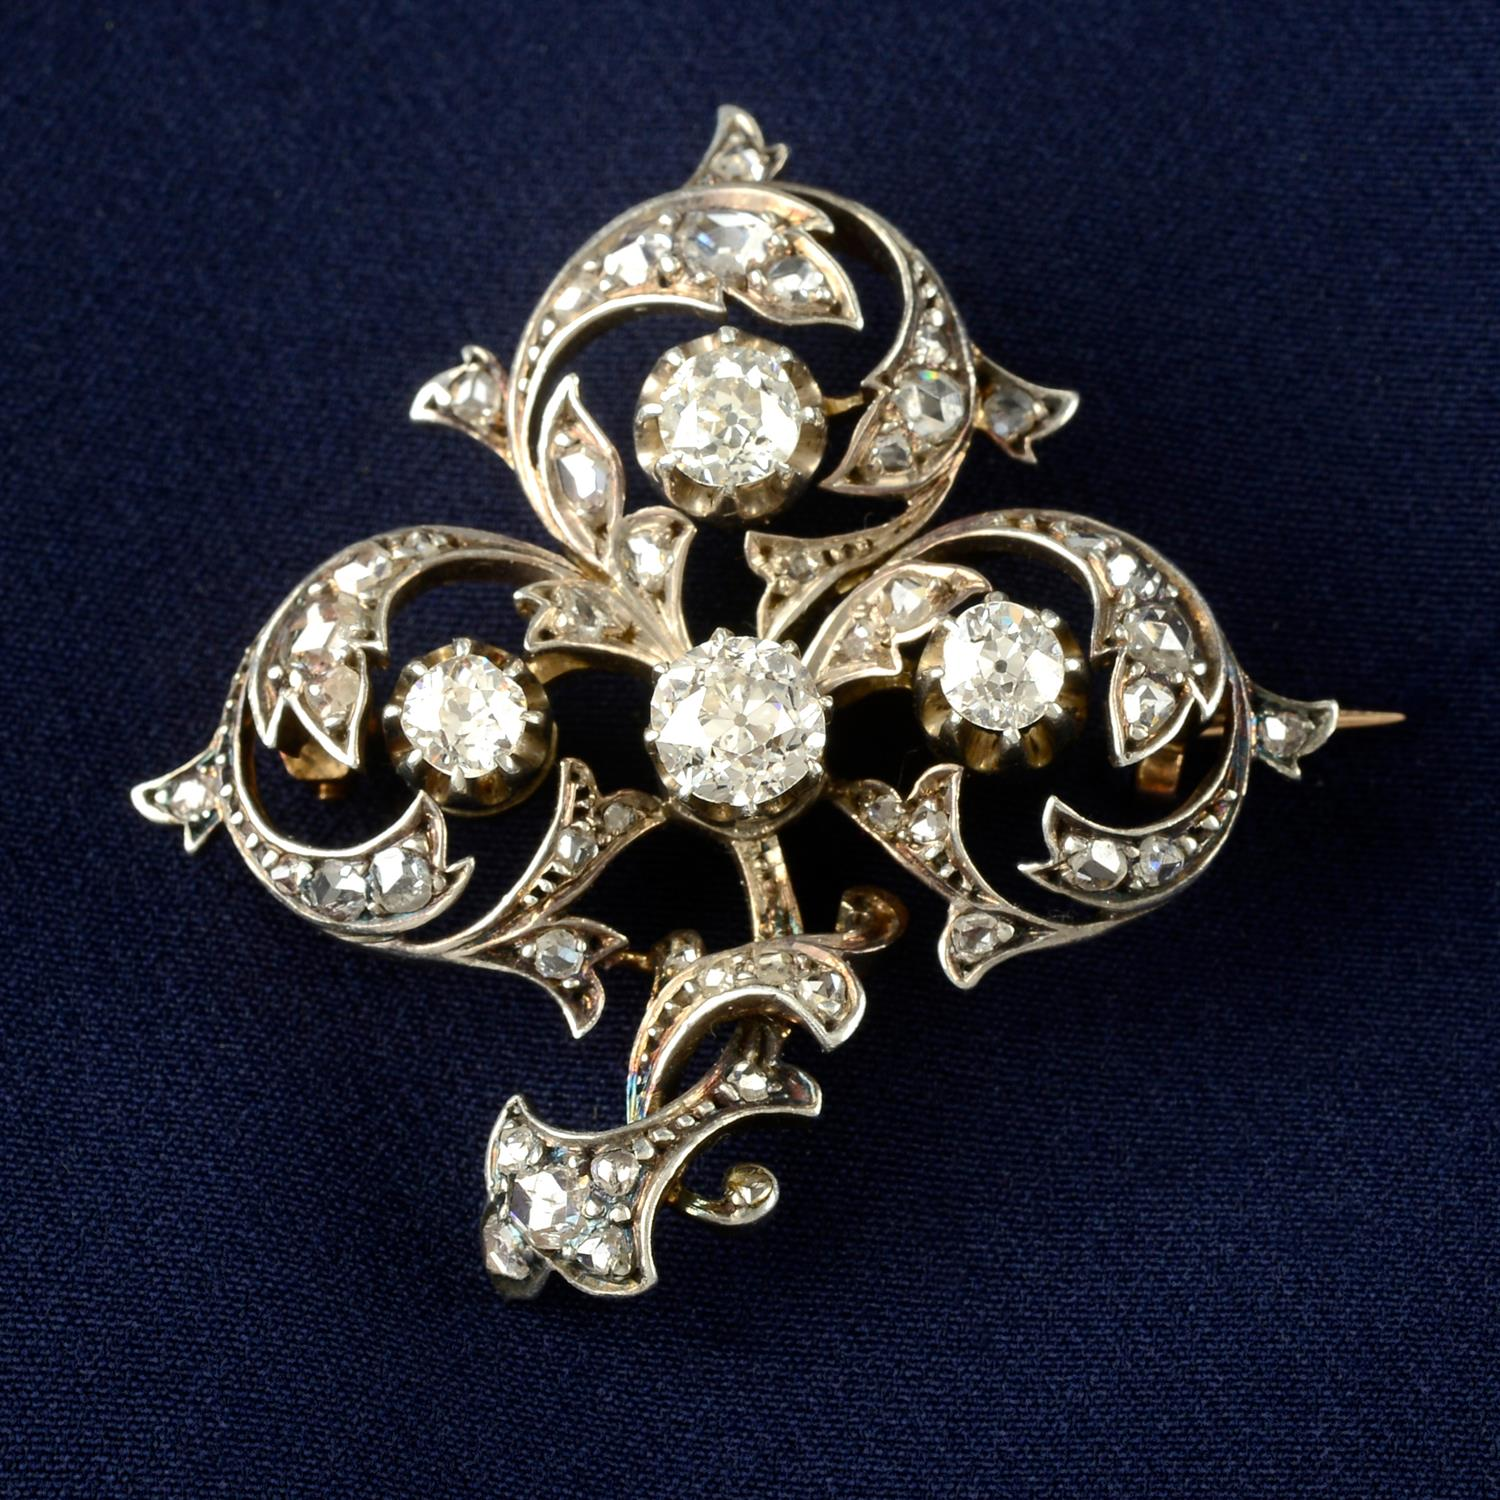 A late 19th century silver and gold, old and rose-cut diamond brooch.